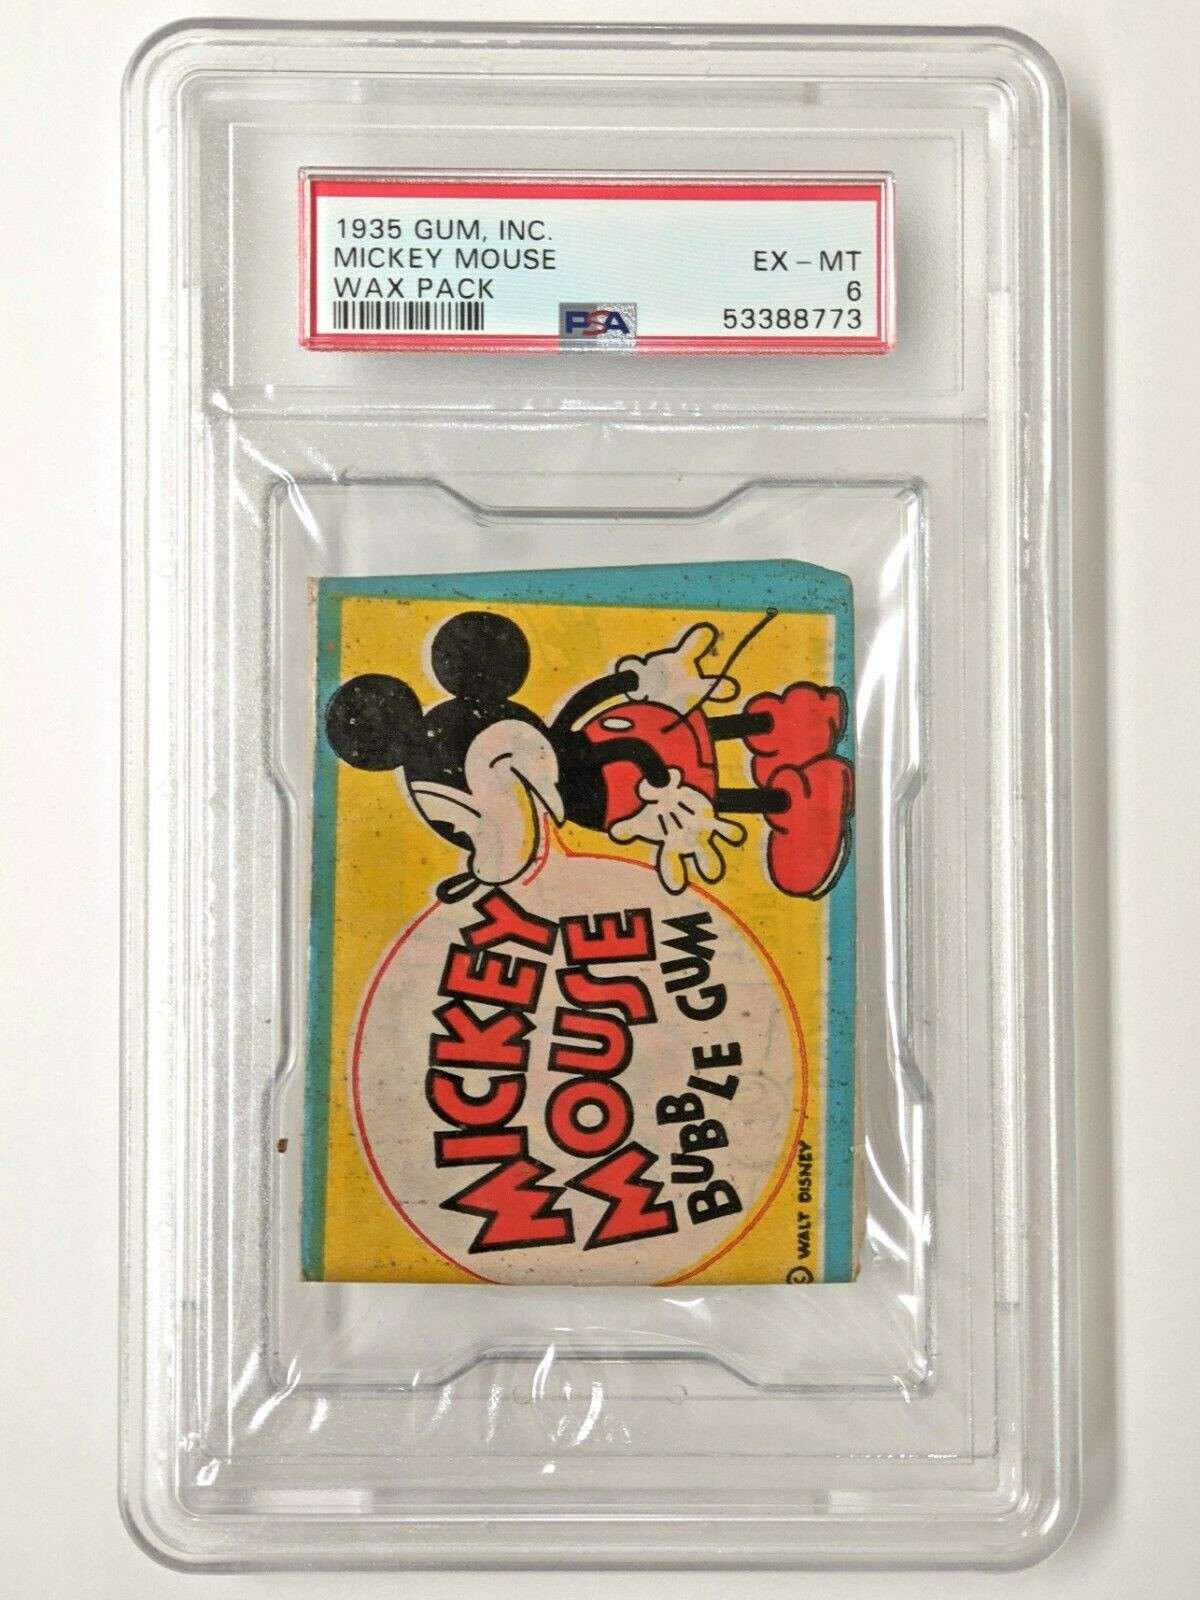 Mickey Mouse Gum Inc. 1935 wax pack